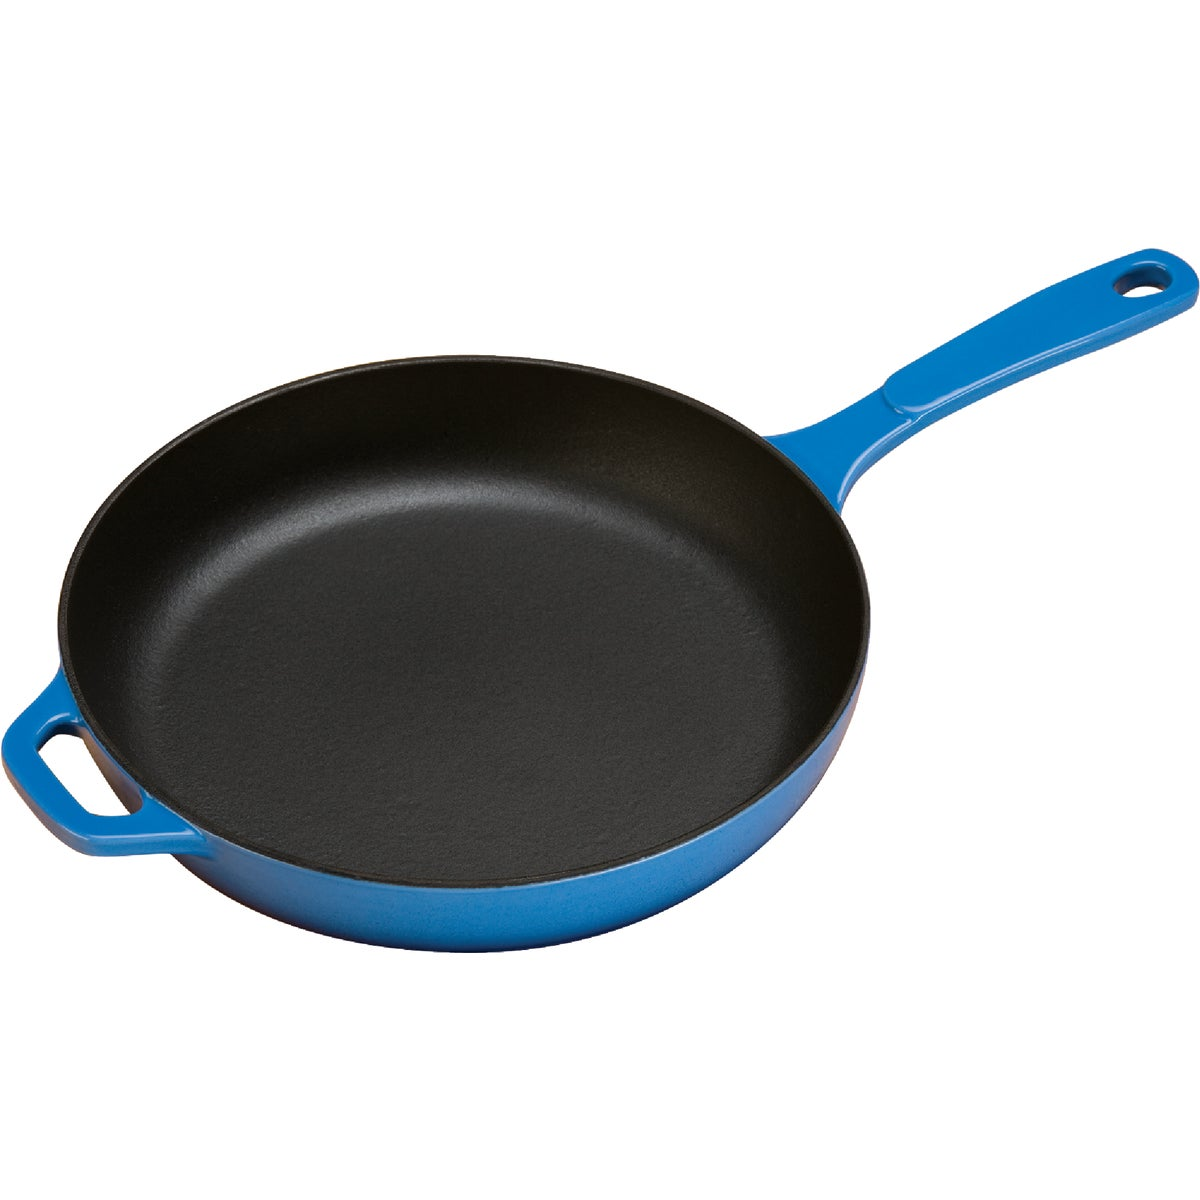 "11"" BLUE SKILLET - EC11S33 by Lodge Mfg Co"